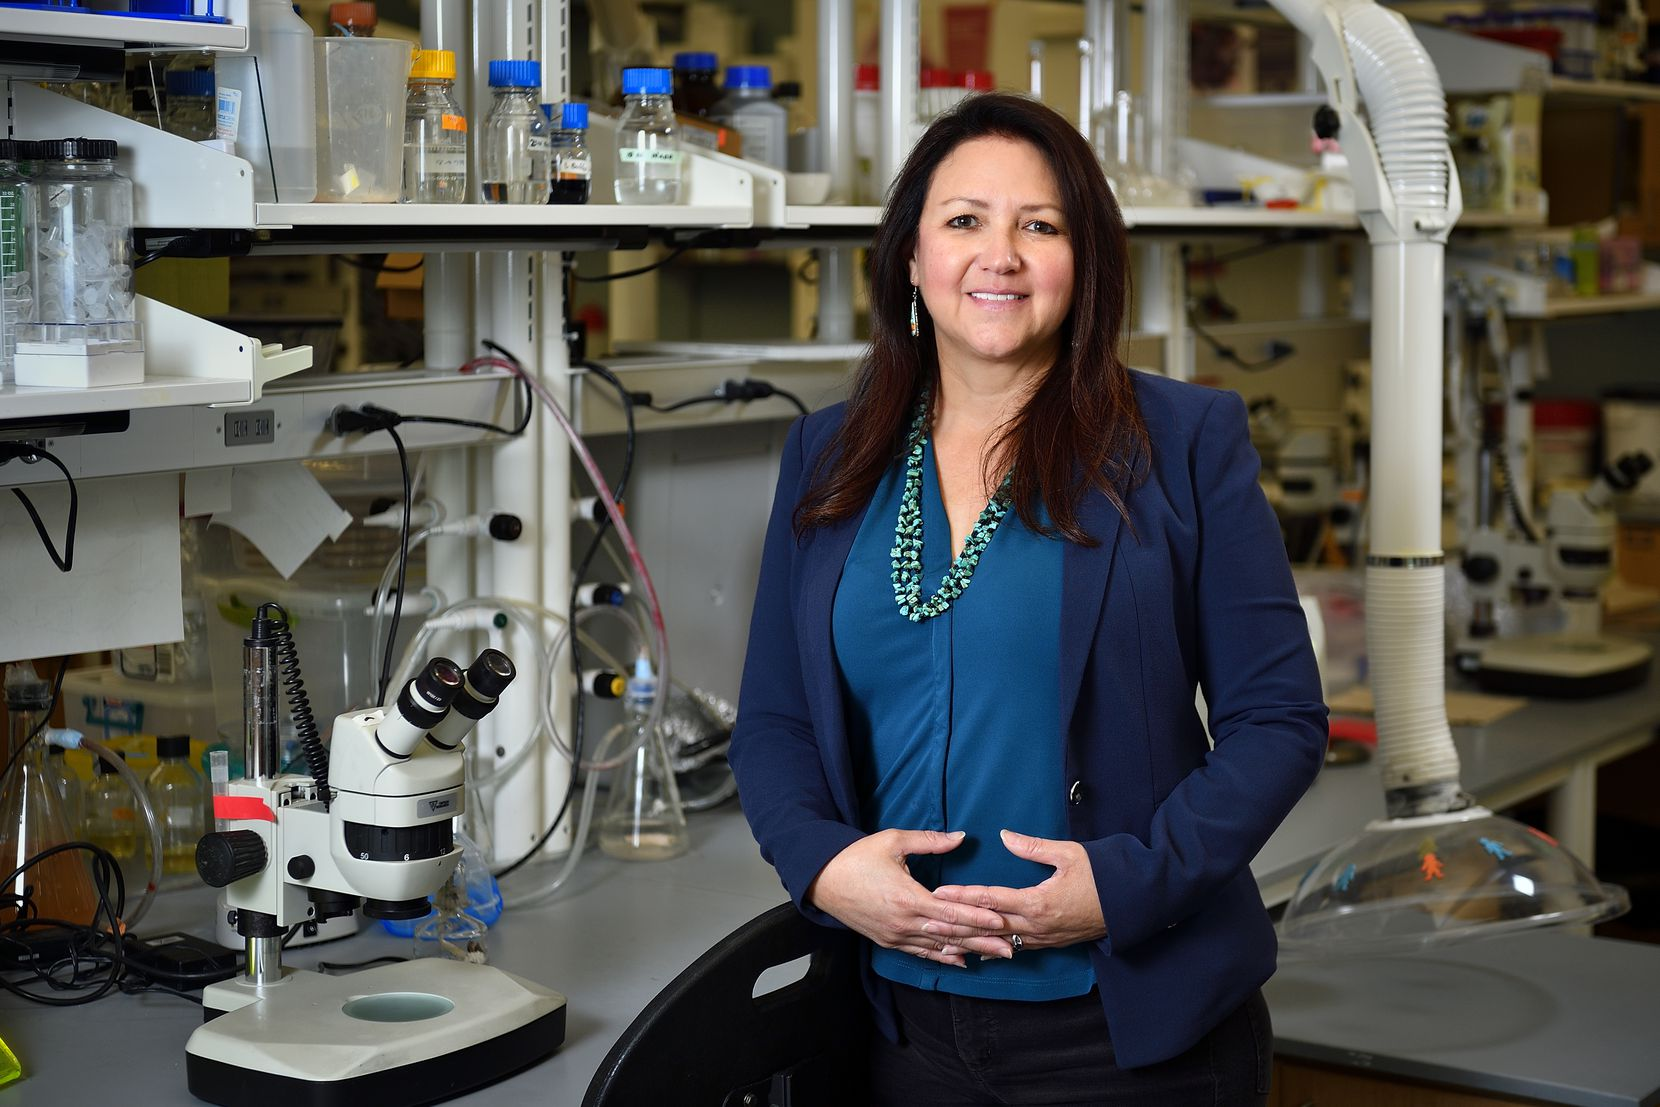 Dr. Pamela Padilla, dean for University of North Texas' College of Science, photographed in her lab in Life Sciences B on the UNT campus in Denton, Texas on September 17, 2020. Photos by Michael Clements.